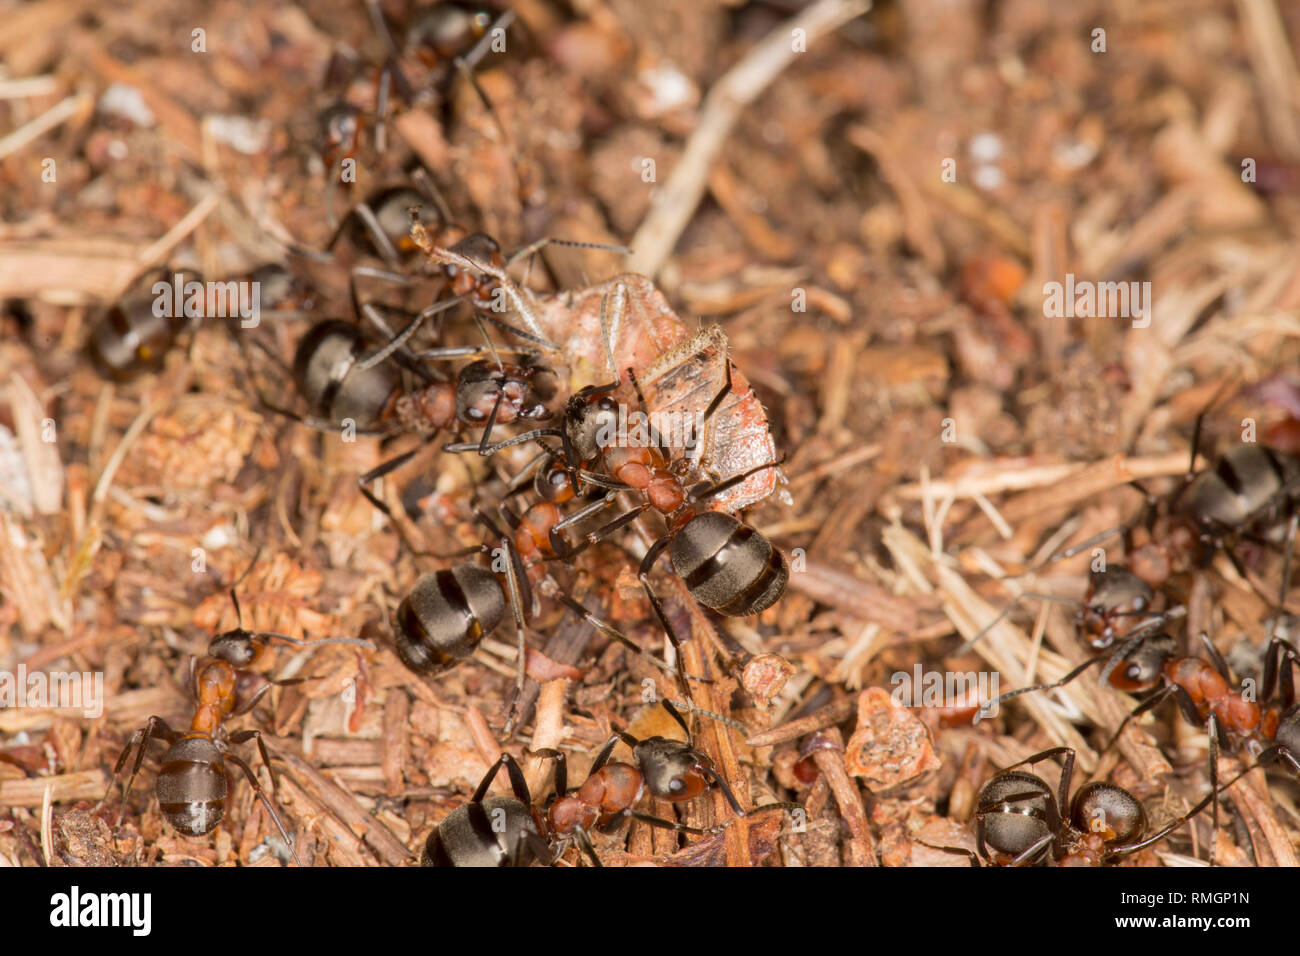 Wood ants, Formica rufa, outside their nest in warm, February sunshine with a shield bug they have captured. The ants can spray formic acid as a defen - Stock Image